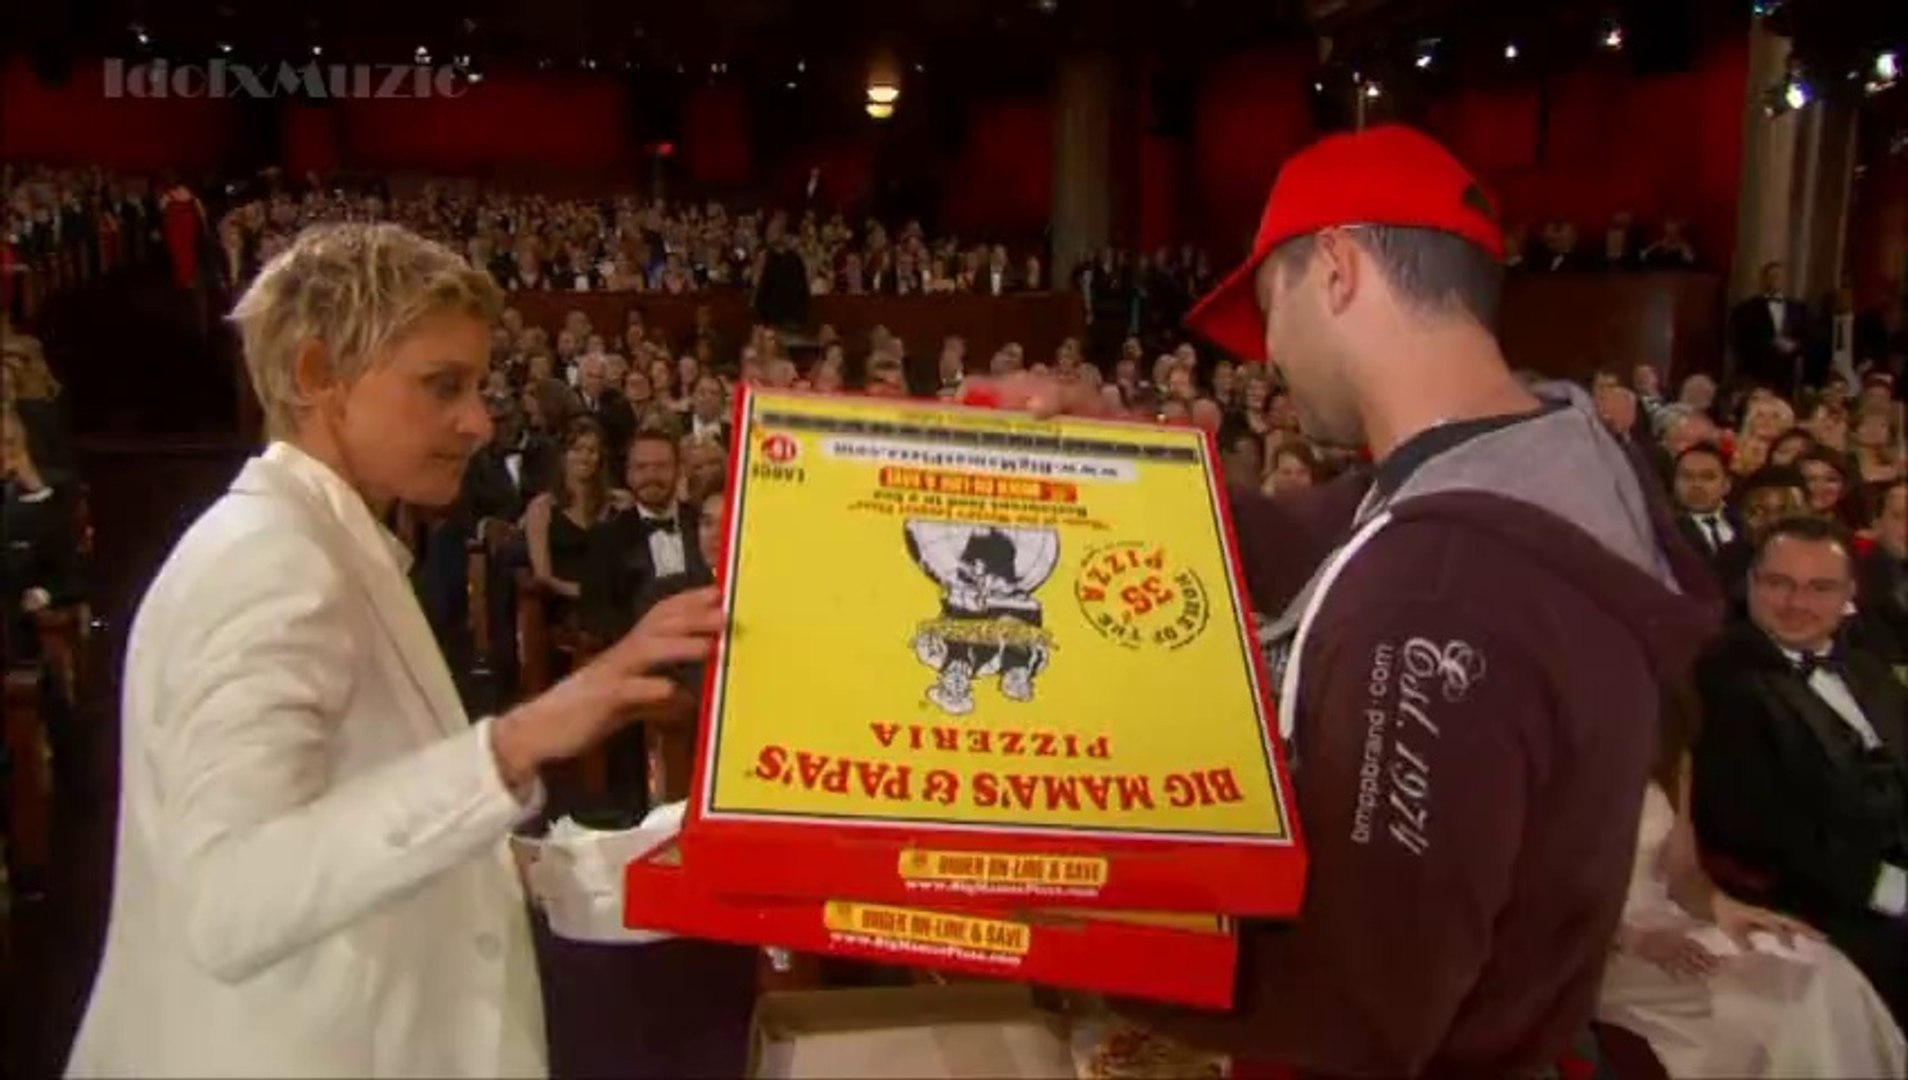 Pizza Is Served By Ellen - Oscars 2014